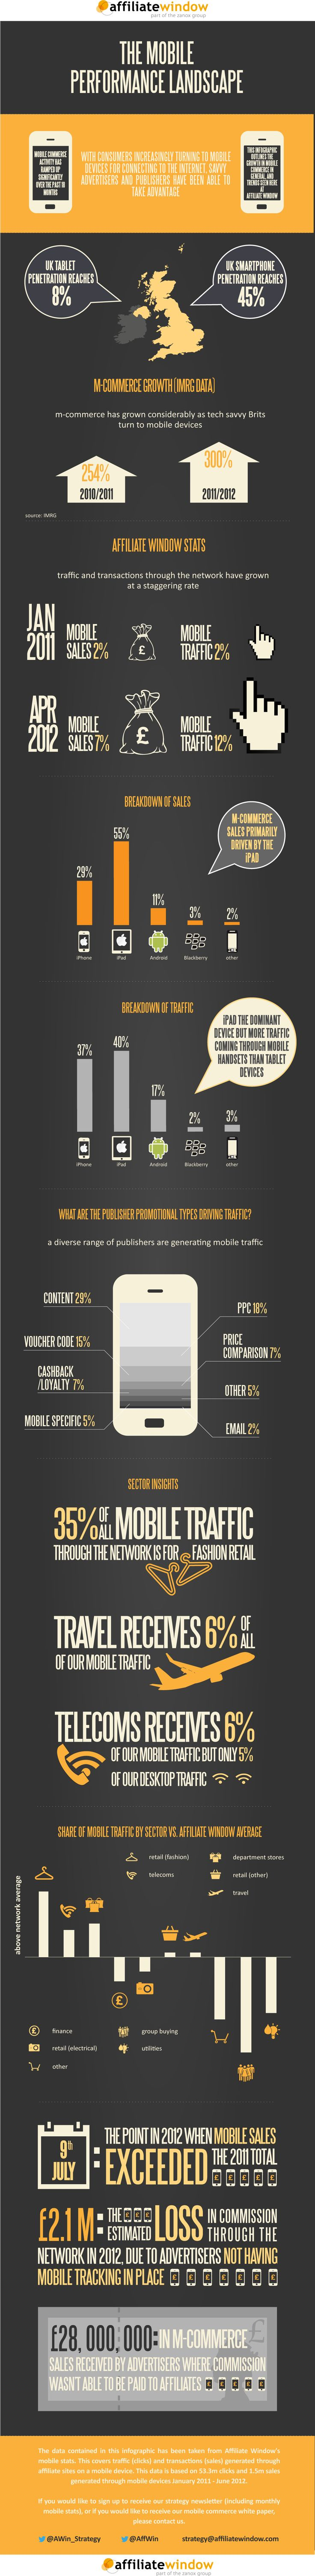 55% of mobile commerce sales driven by the iPad [infographic] | Econsultancy